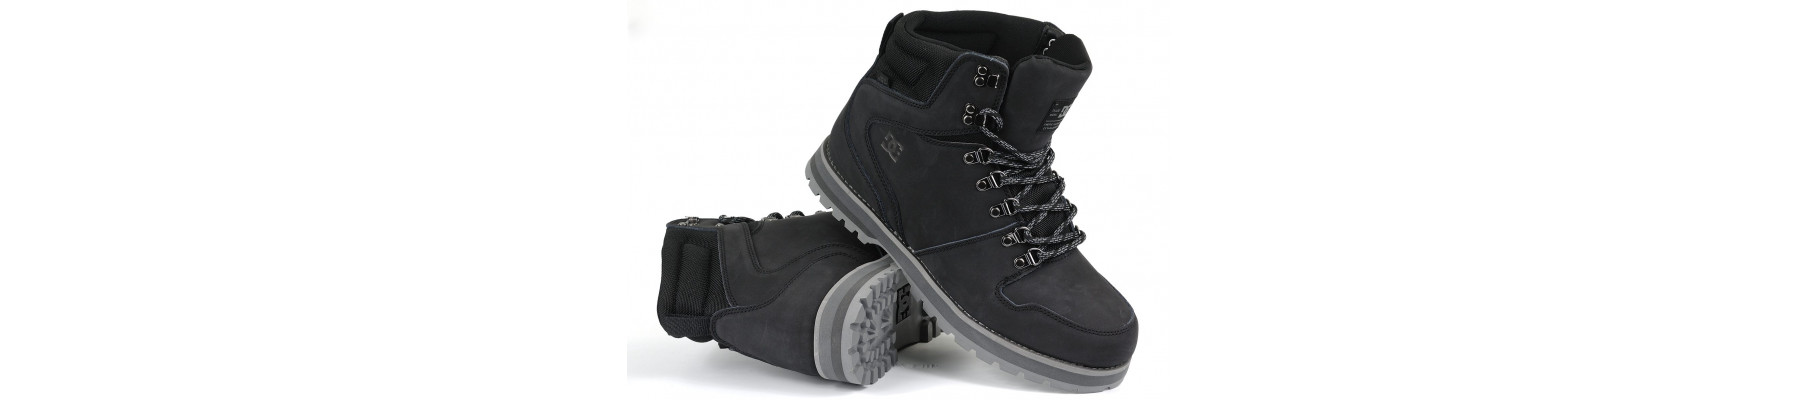 DC Peary Boot Gyb GreyBlack